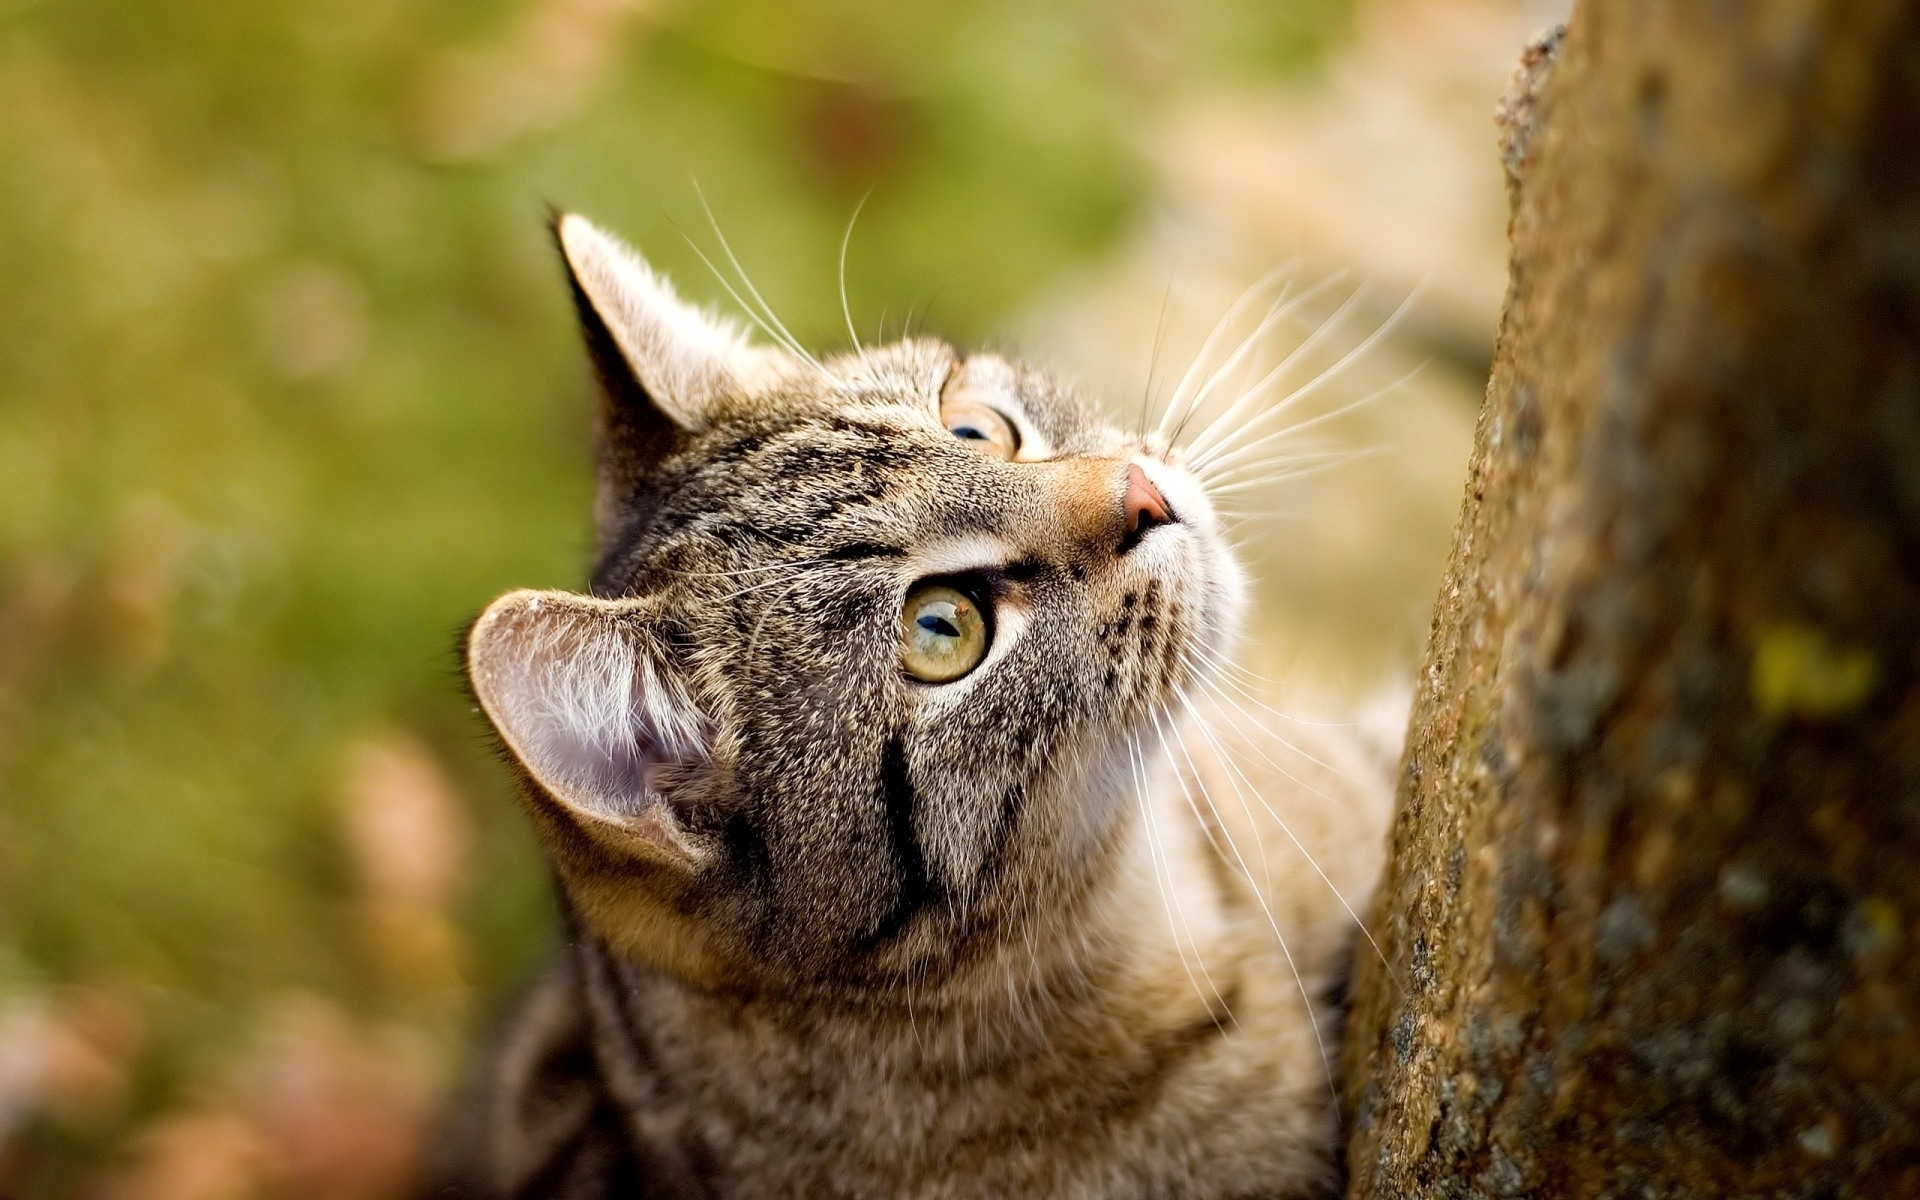 49322 download wallpaper Animals, Cats screensavers and pictures for free